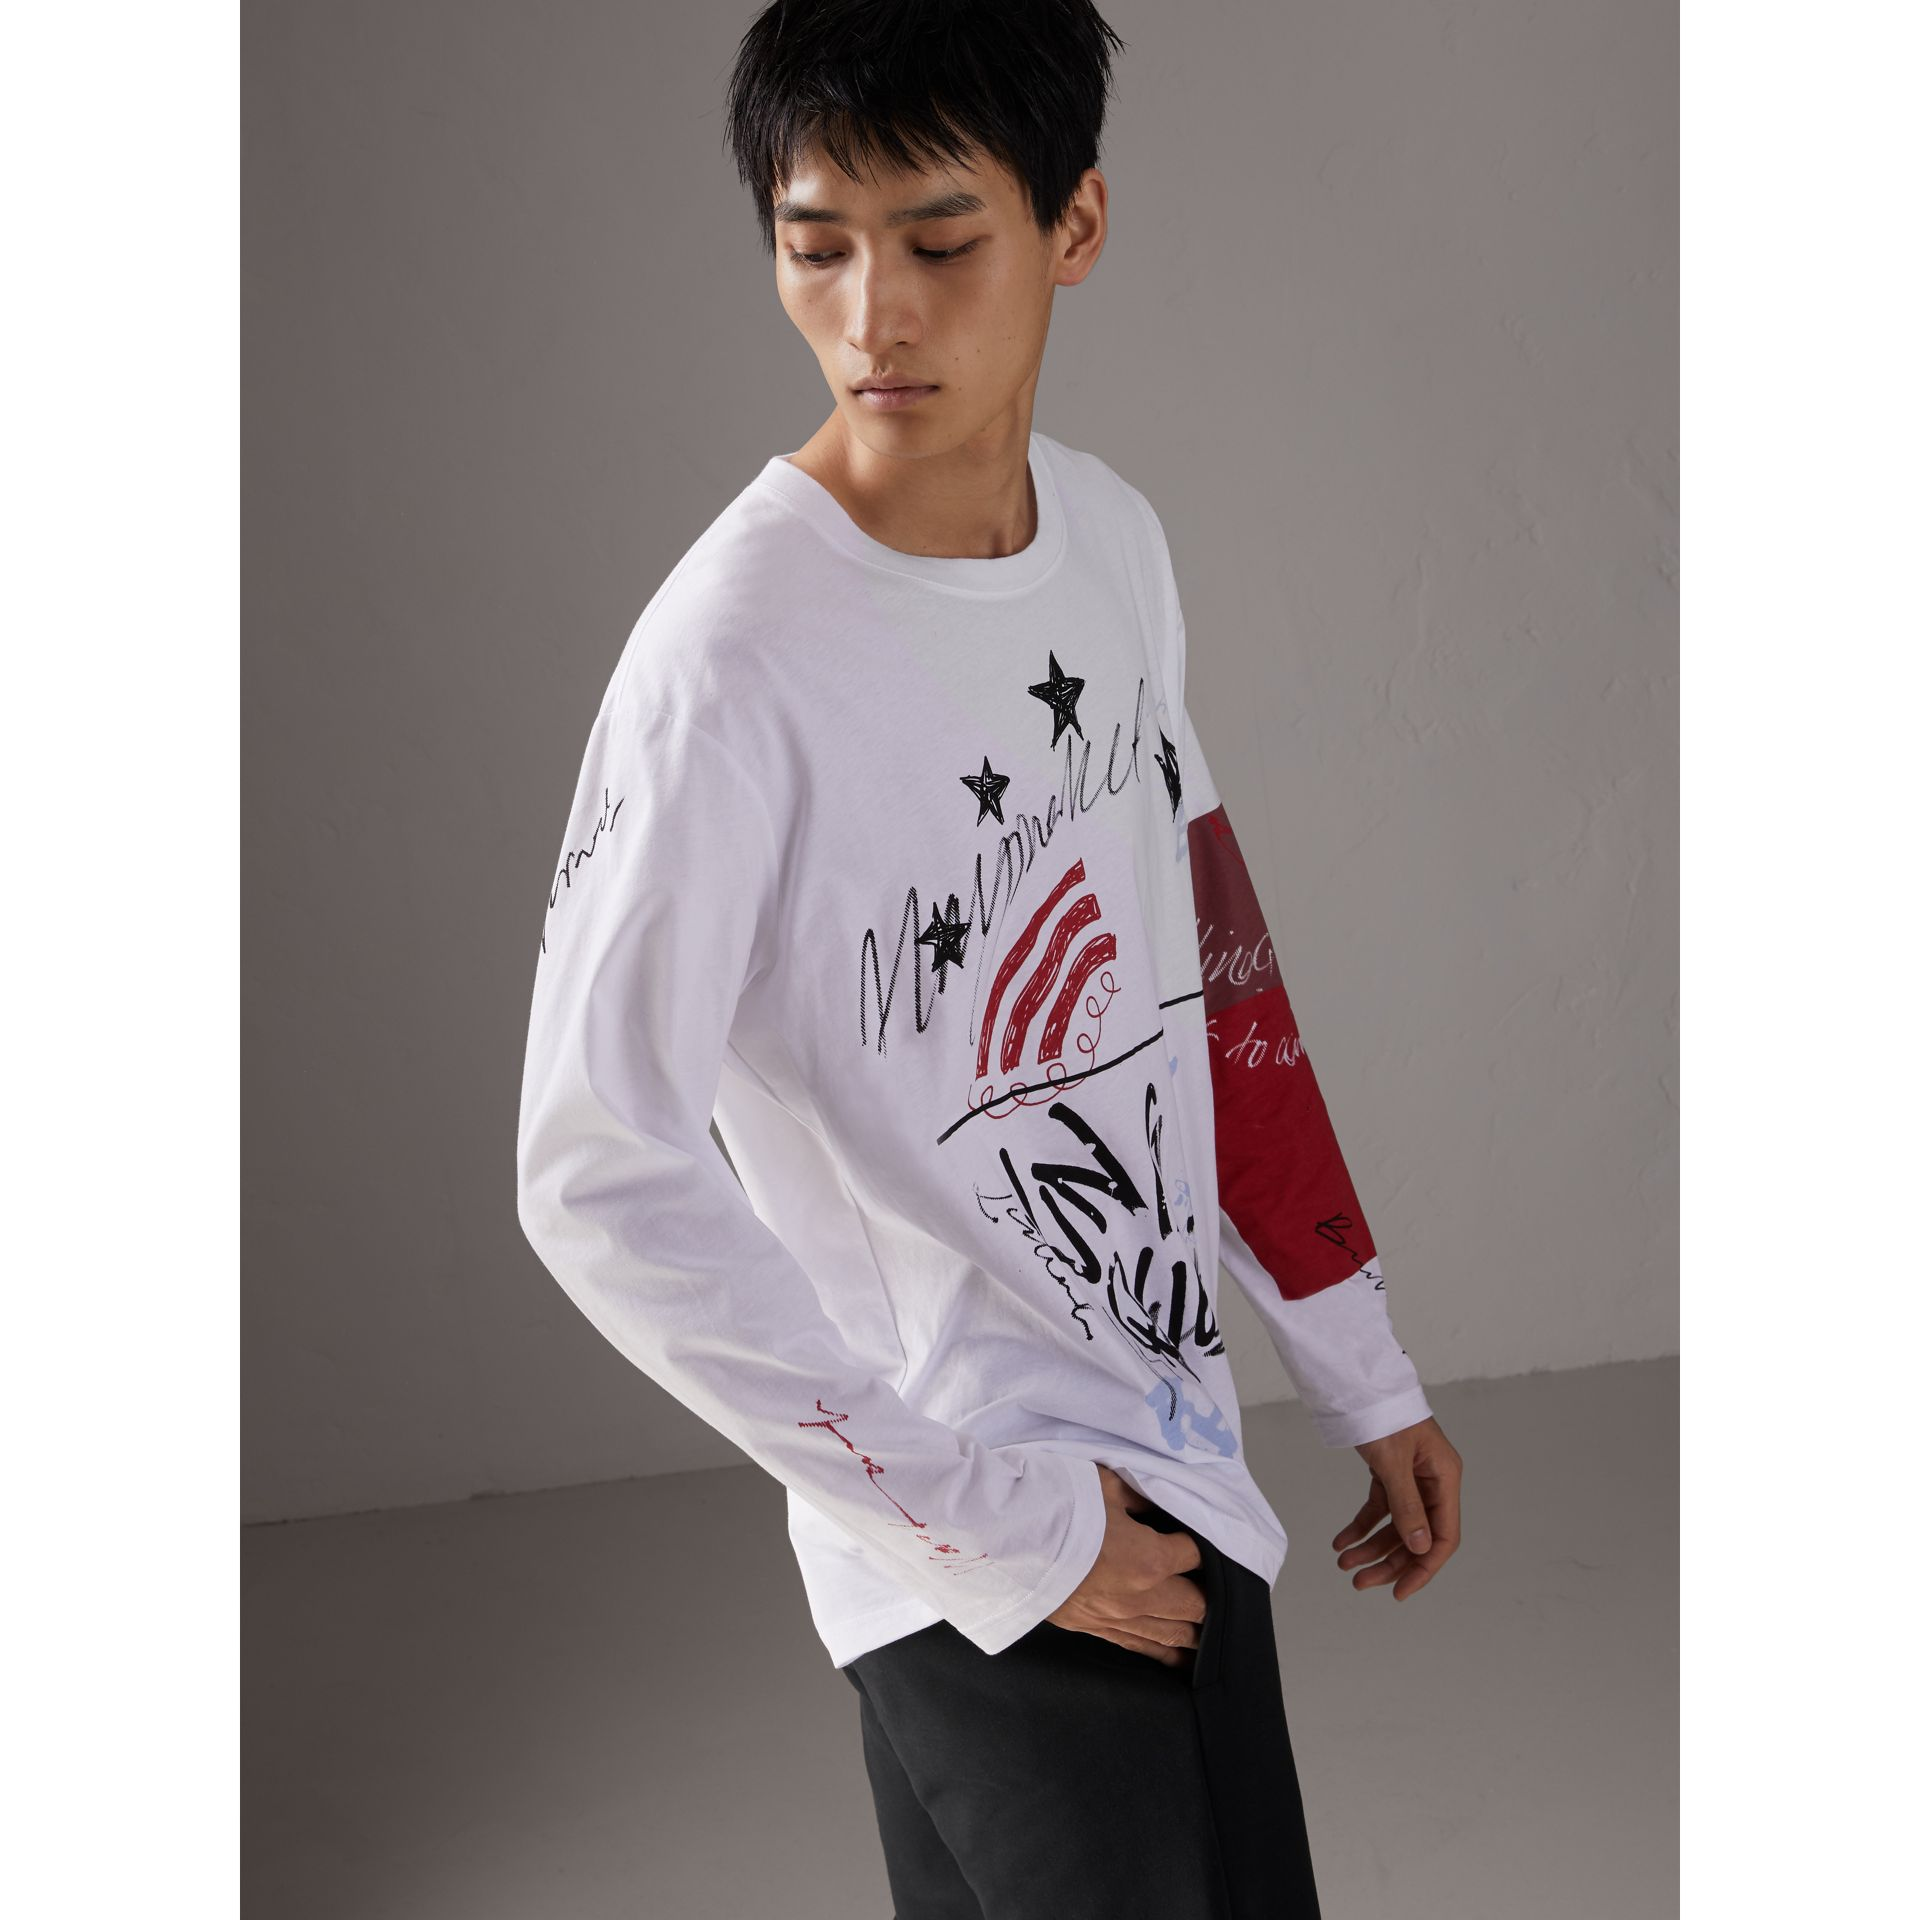 Burberry x Kris Wu Long-sleeve Printed Cotton Top in White - Men | Burberry United Kingdom - gallery image 6